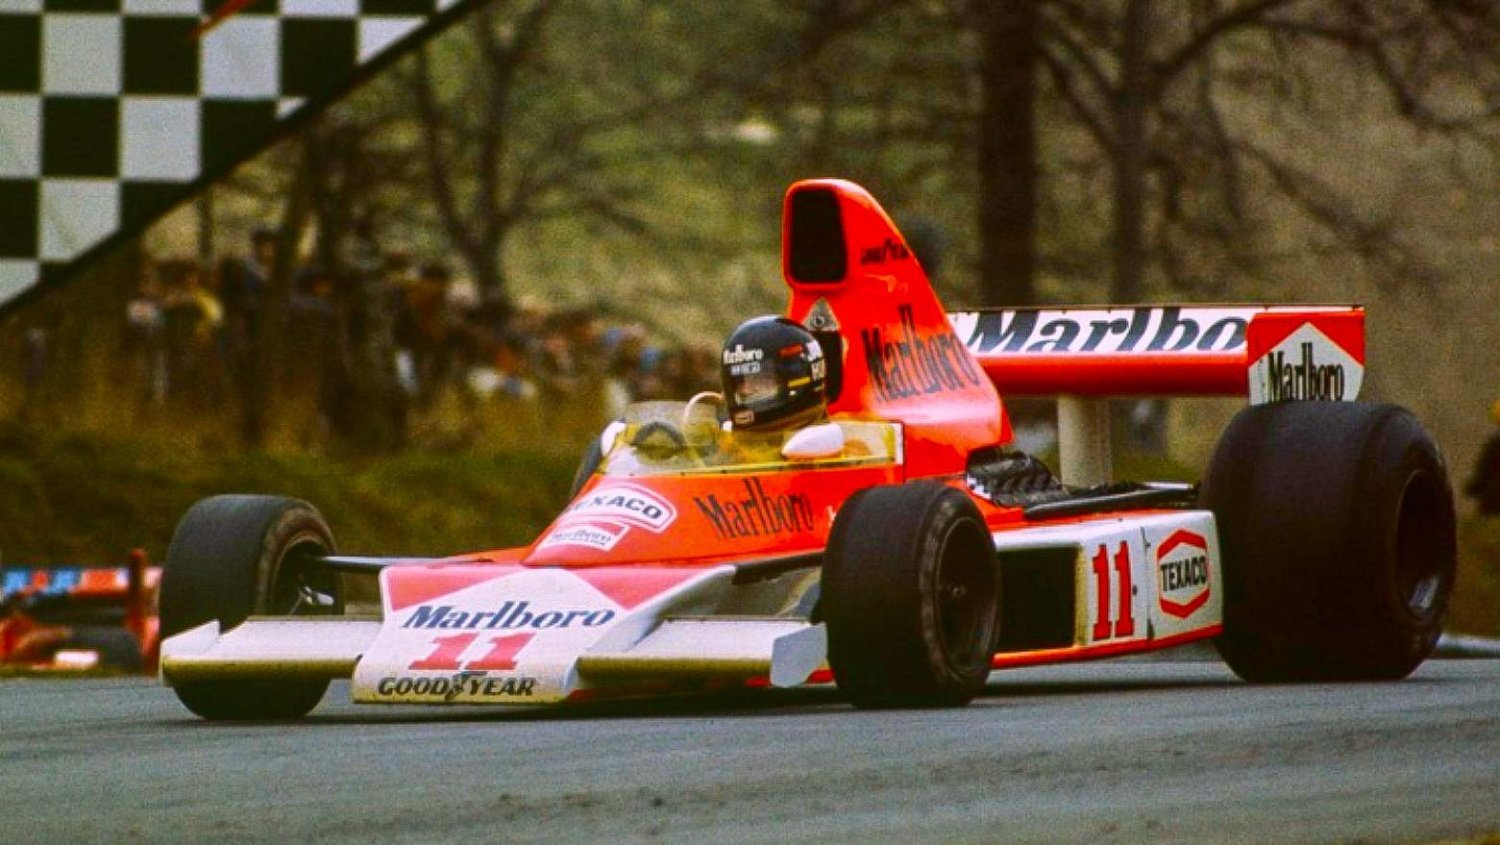 Flashback: James Hunt's first victory for McLaren at the 1976 Race of Champions